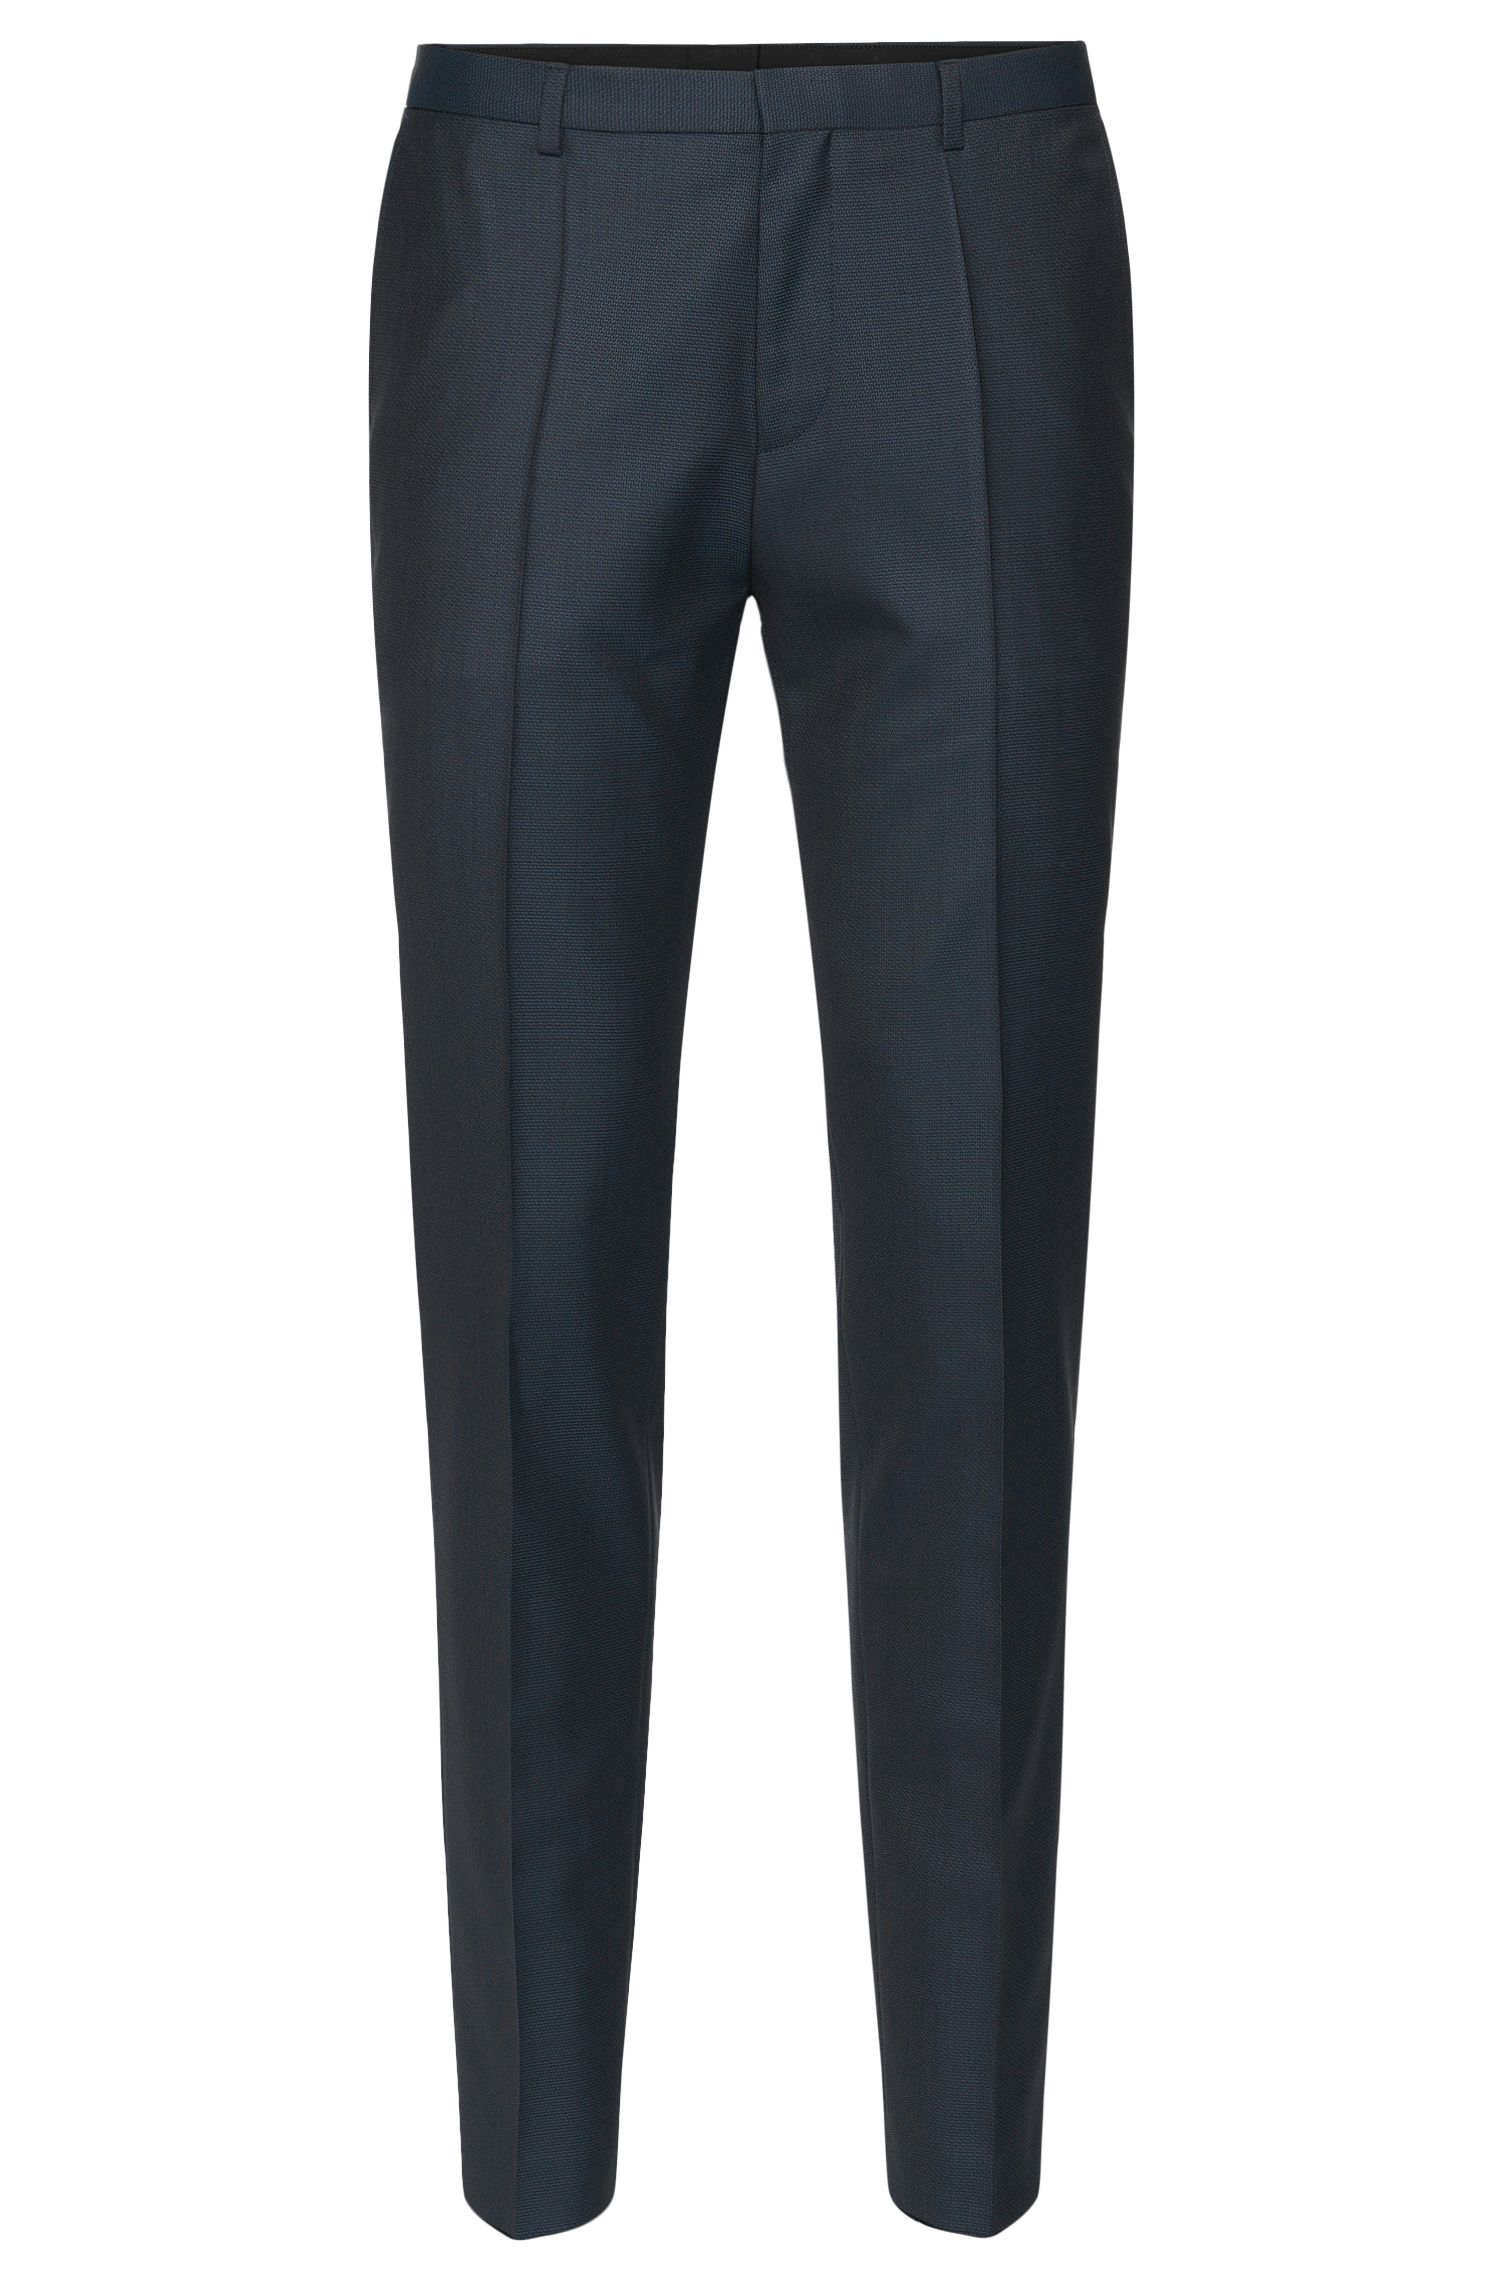 'Hets' | Slim Fit, Virgin Wool Patterned Dress Pants